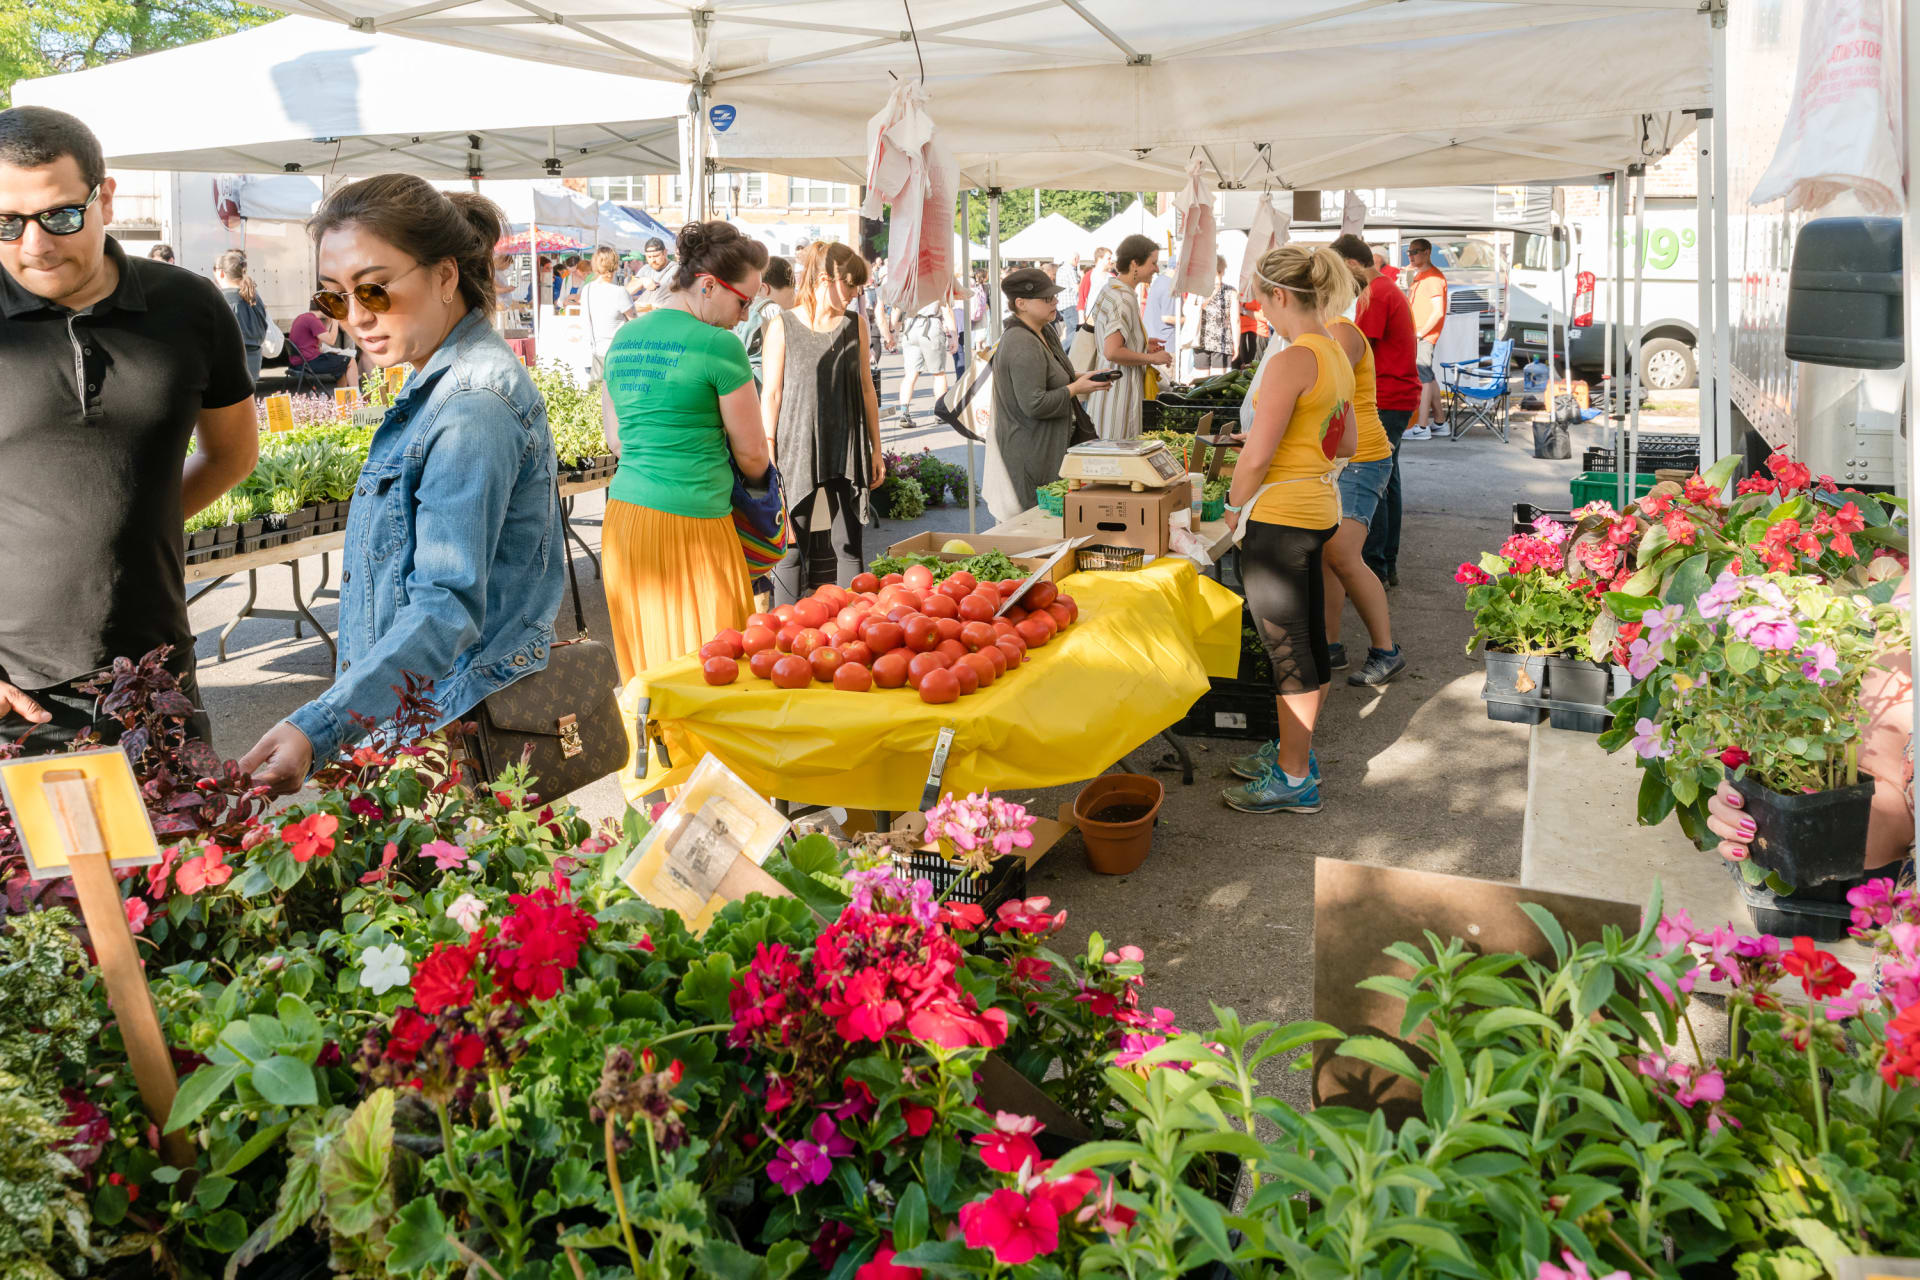 Lincoln Square Farmers Market Flowers and Produce